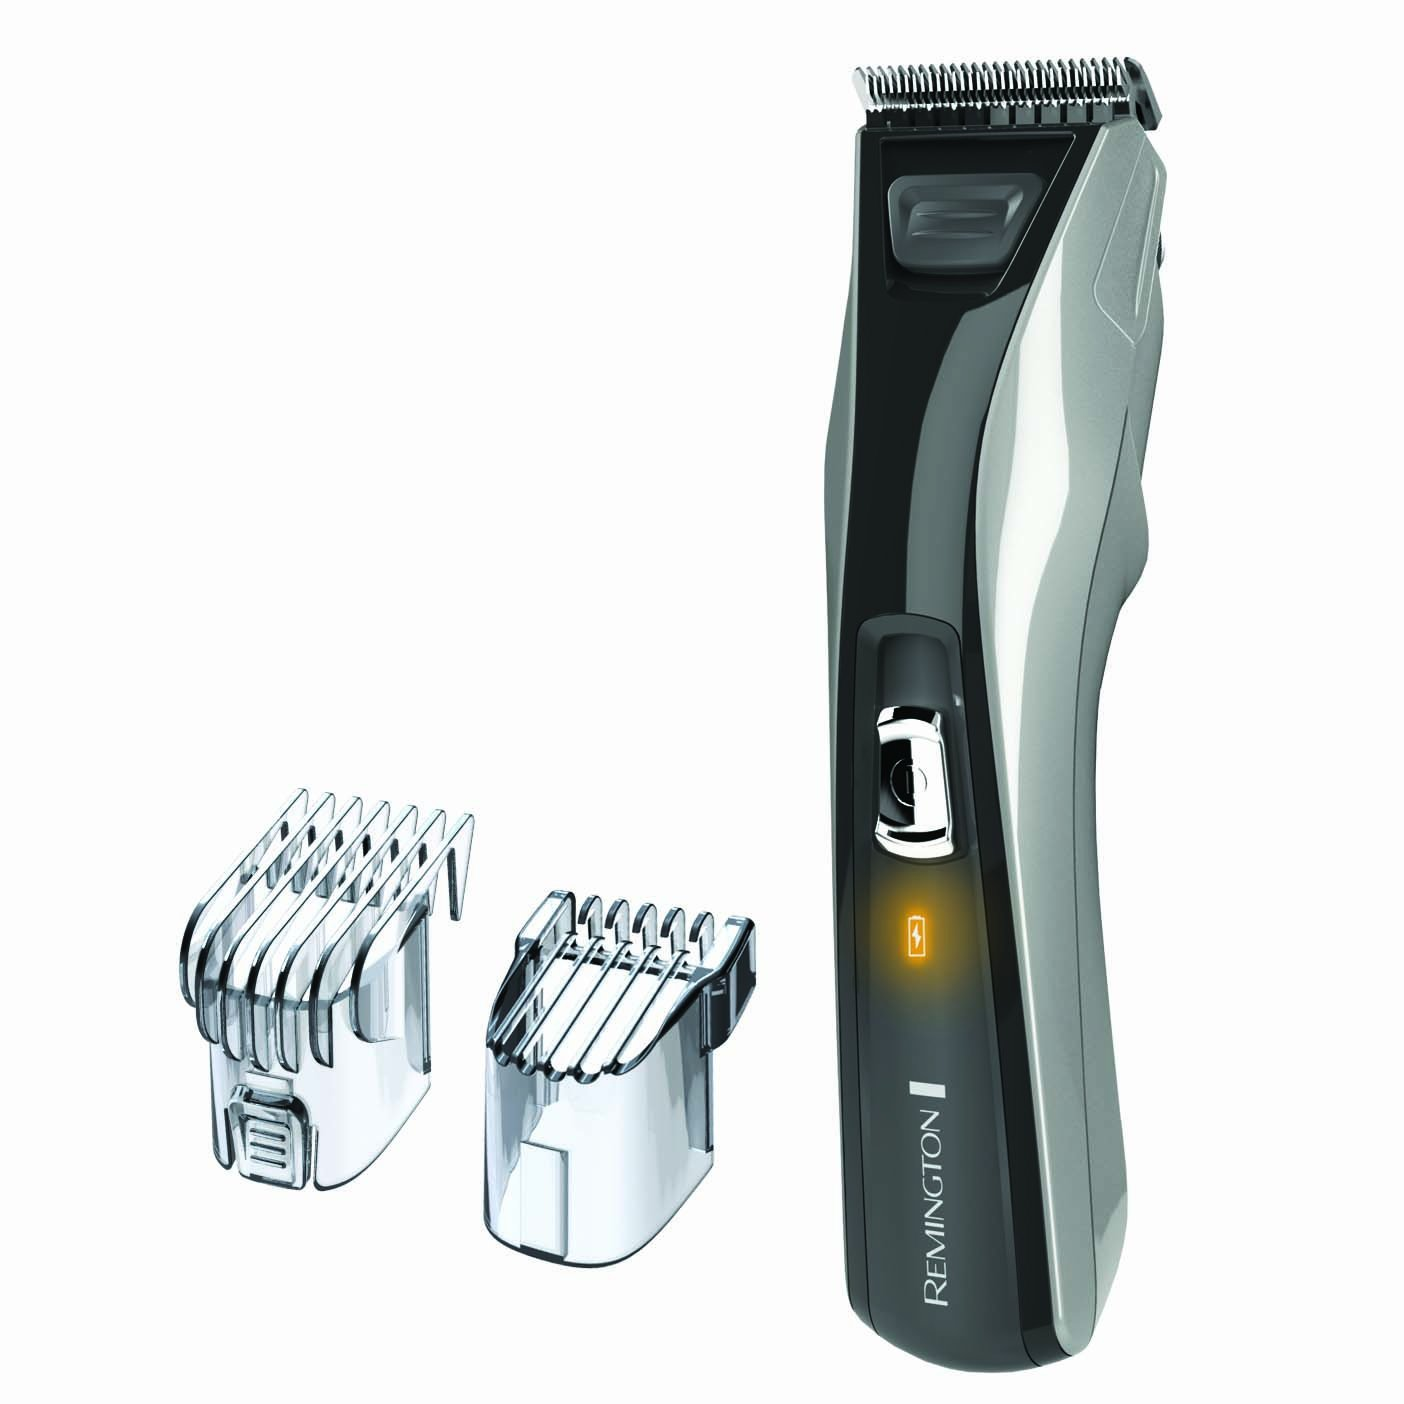 Remington HC5350AM Professional Cord cordless Rechargeable Beard Trimmer and Haircut Kit